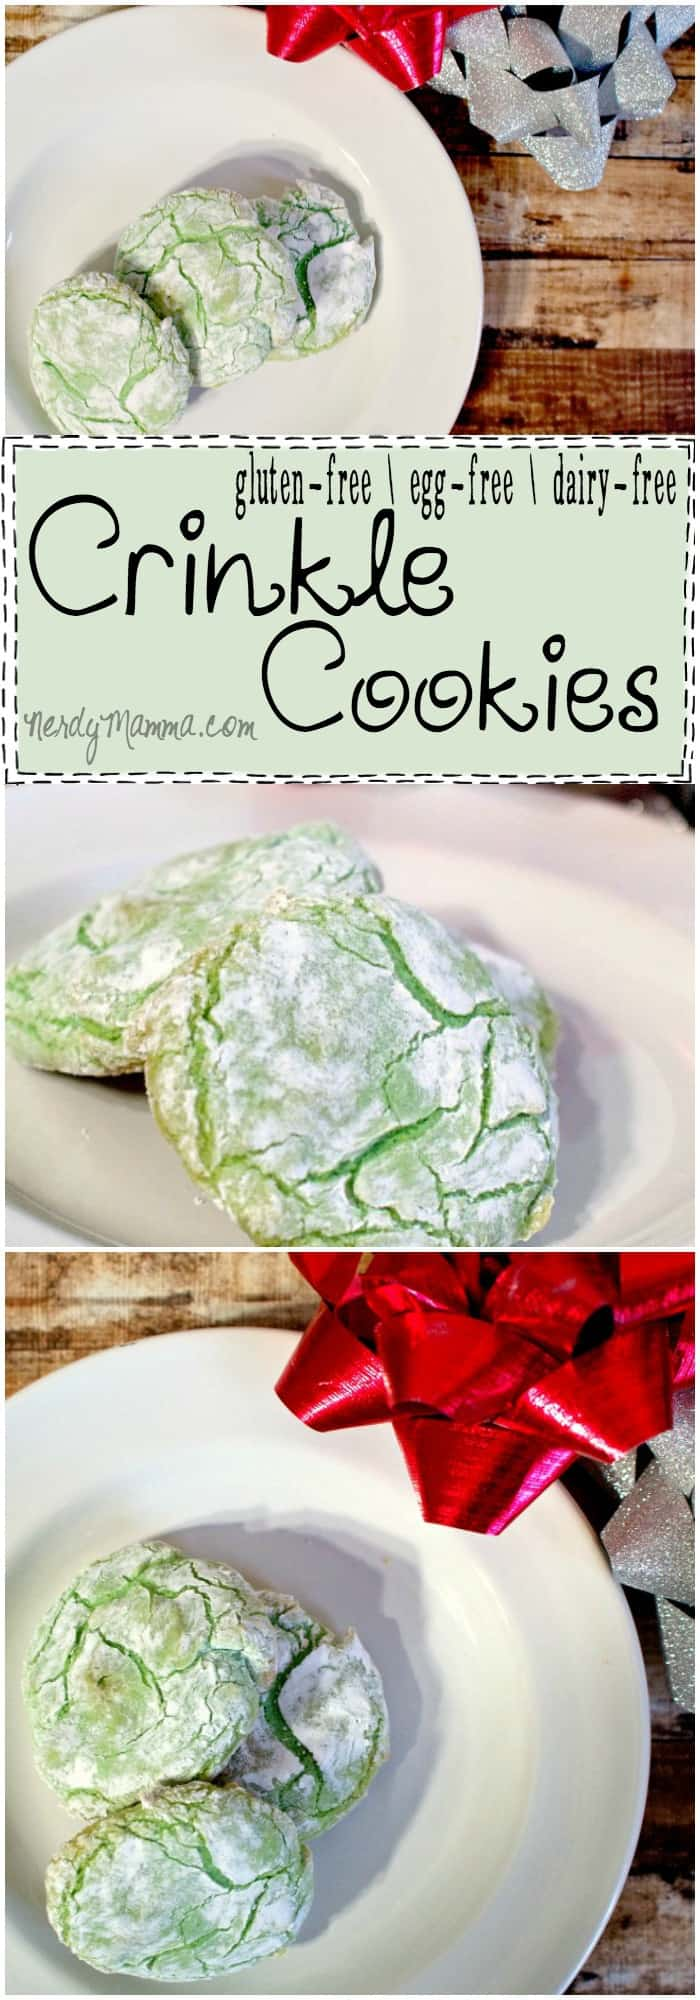 I cannot believe this recipe for gluten-free, egg-free and dairy-free Crinkle Cookies. I mean, it sounds so simple. And delicious. How can I NOT make them!